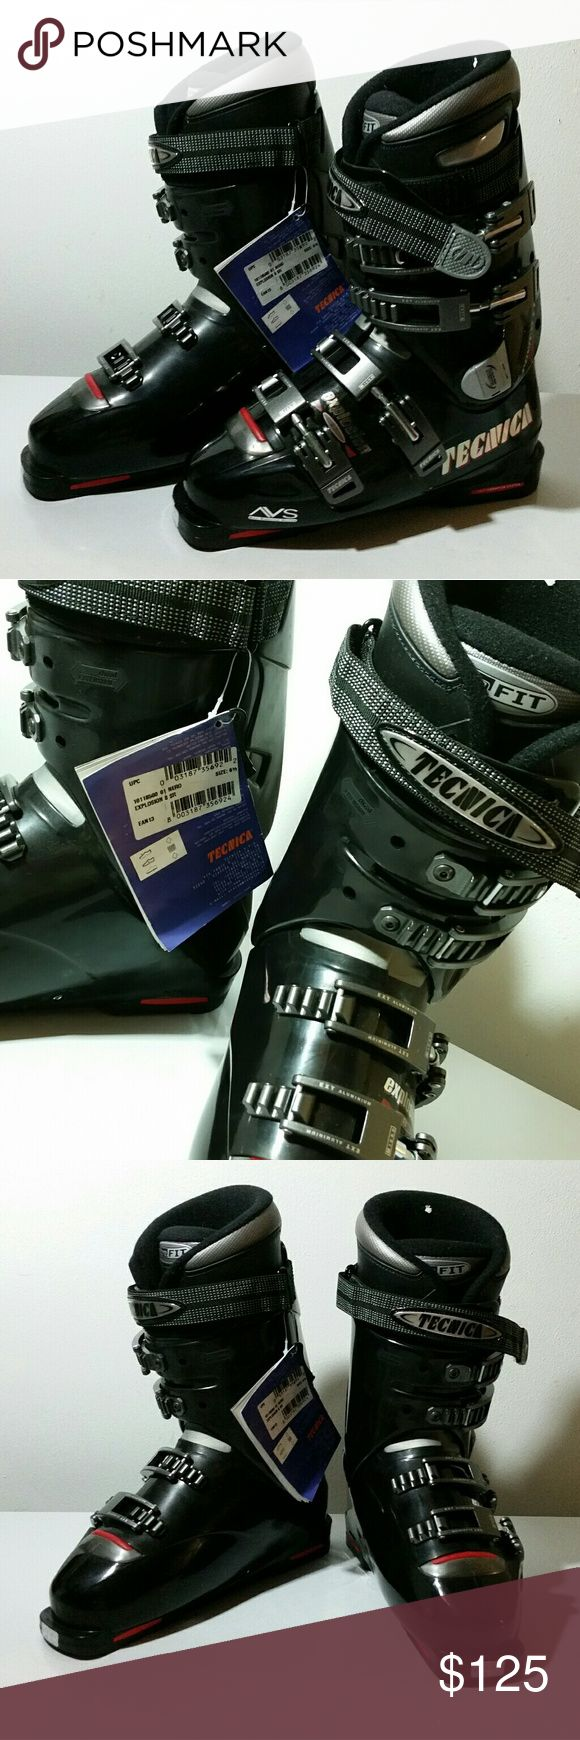 Men's Ski Boots Up for grabs are these NWT men's TECNICA Size US 7.5 Black Ski Boots. These are new without box, but they have a tag. Thanks for looking. Tecnica Other